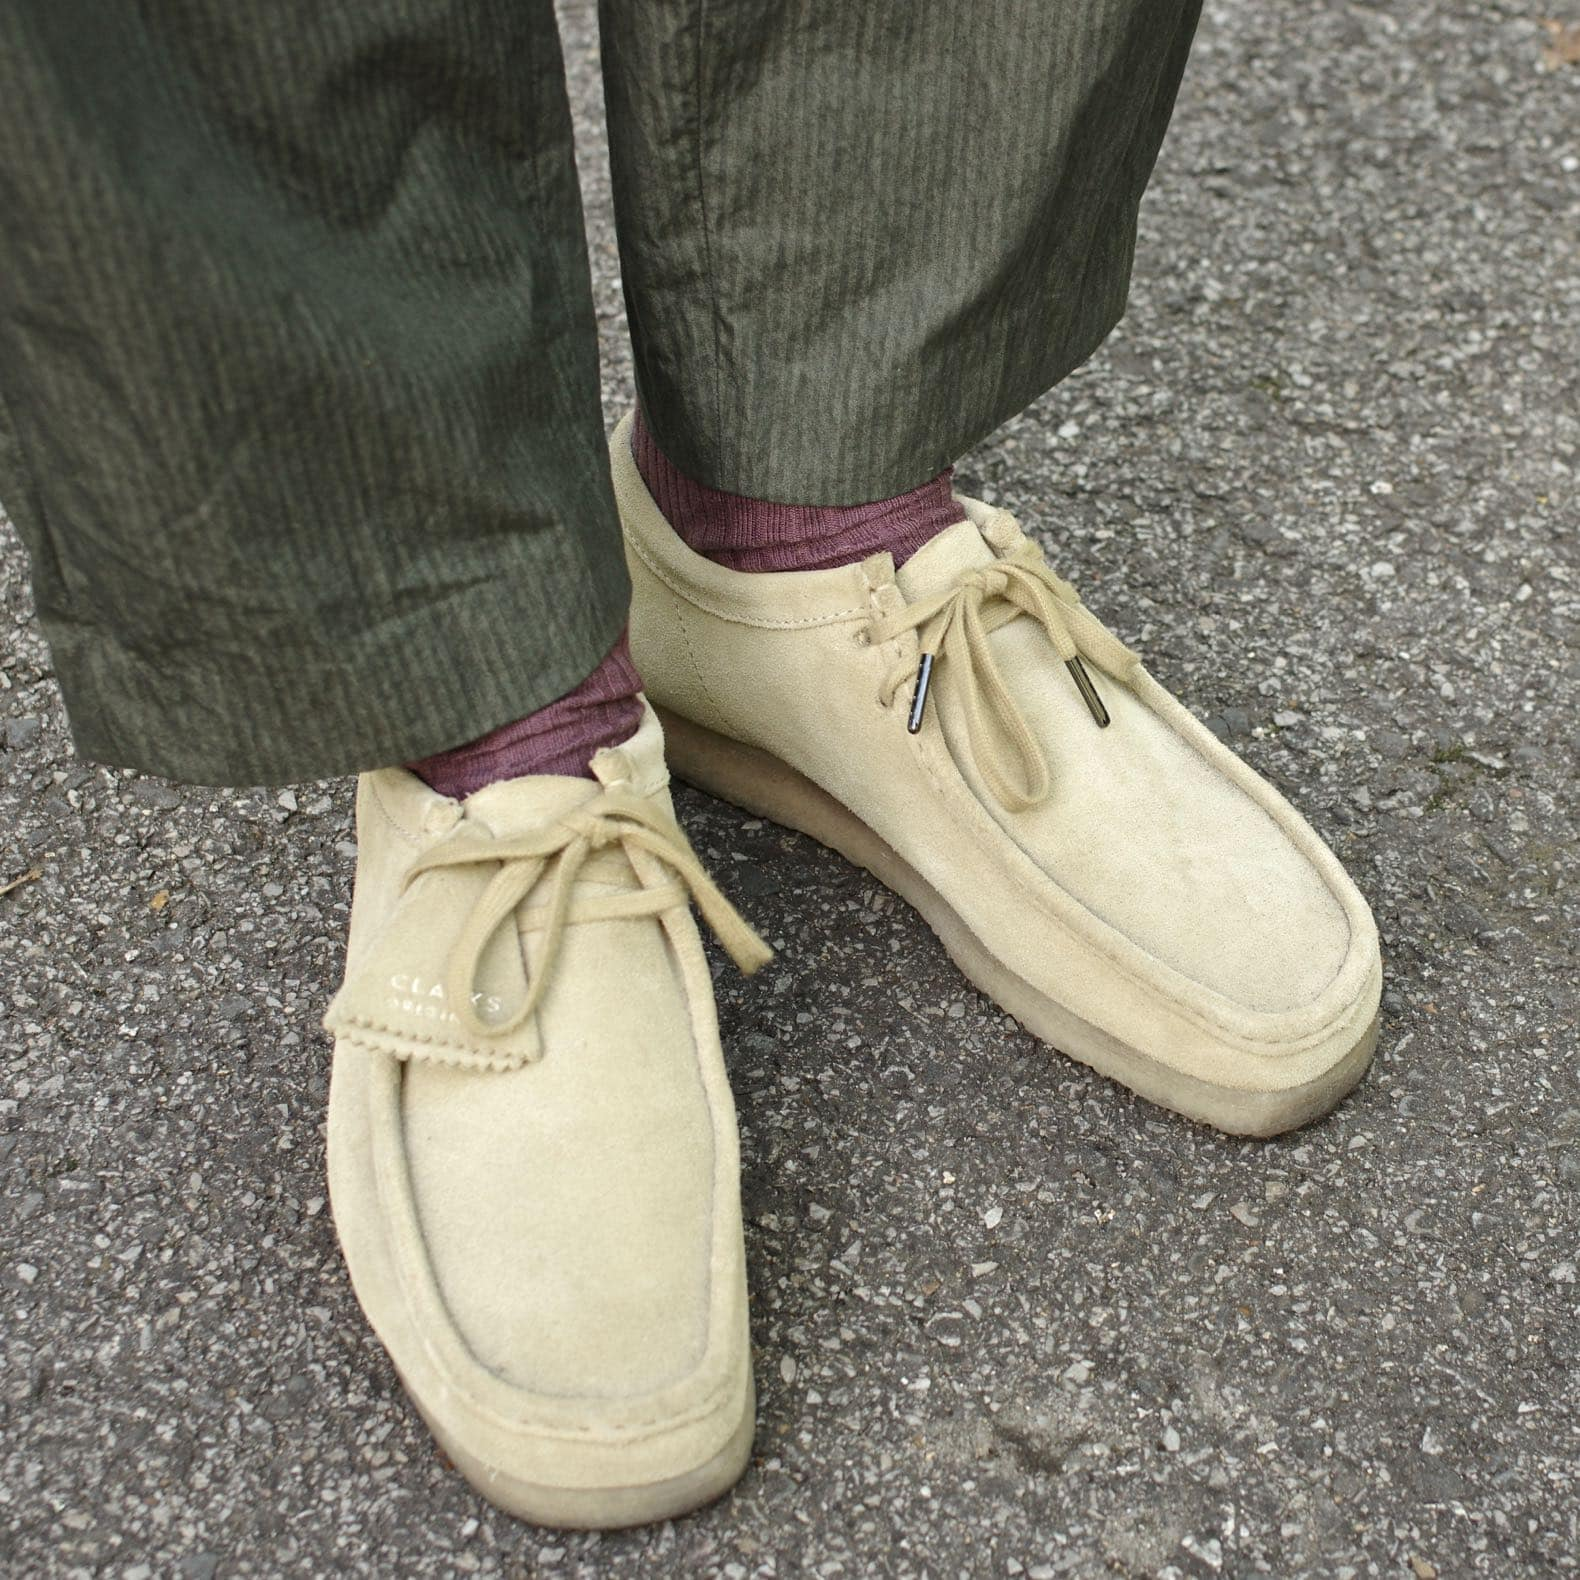 clarks wallabees maple suede